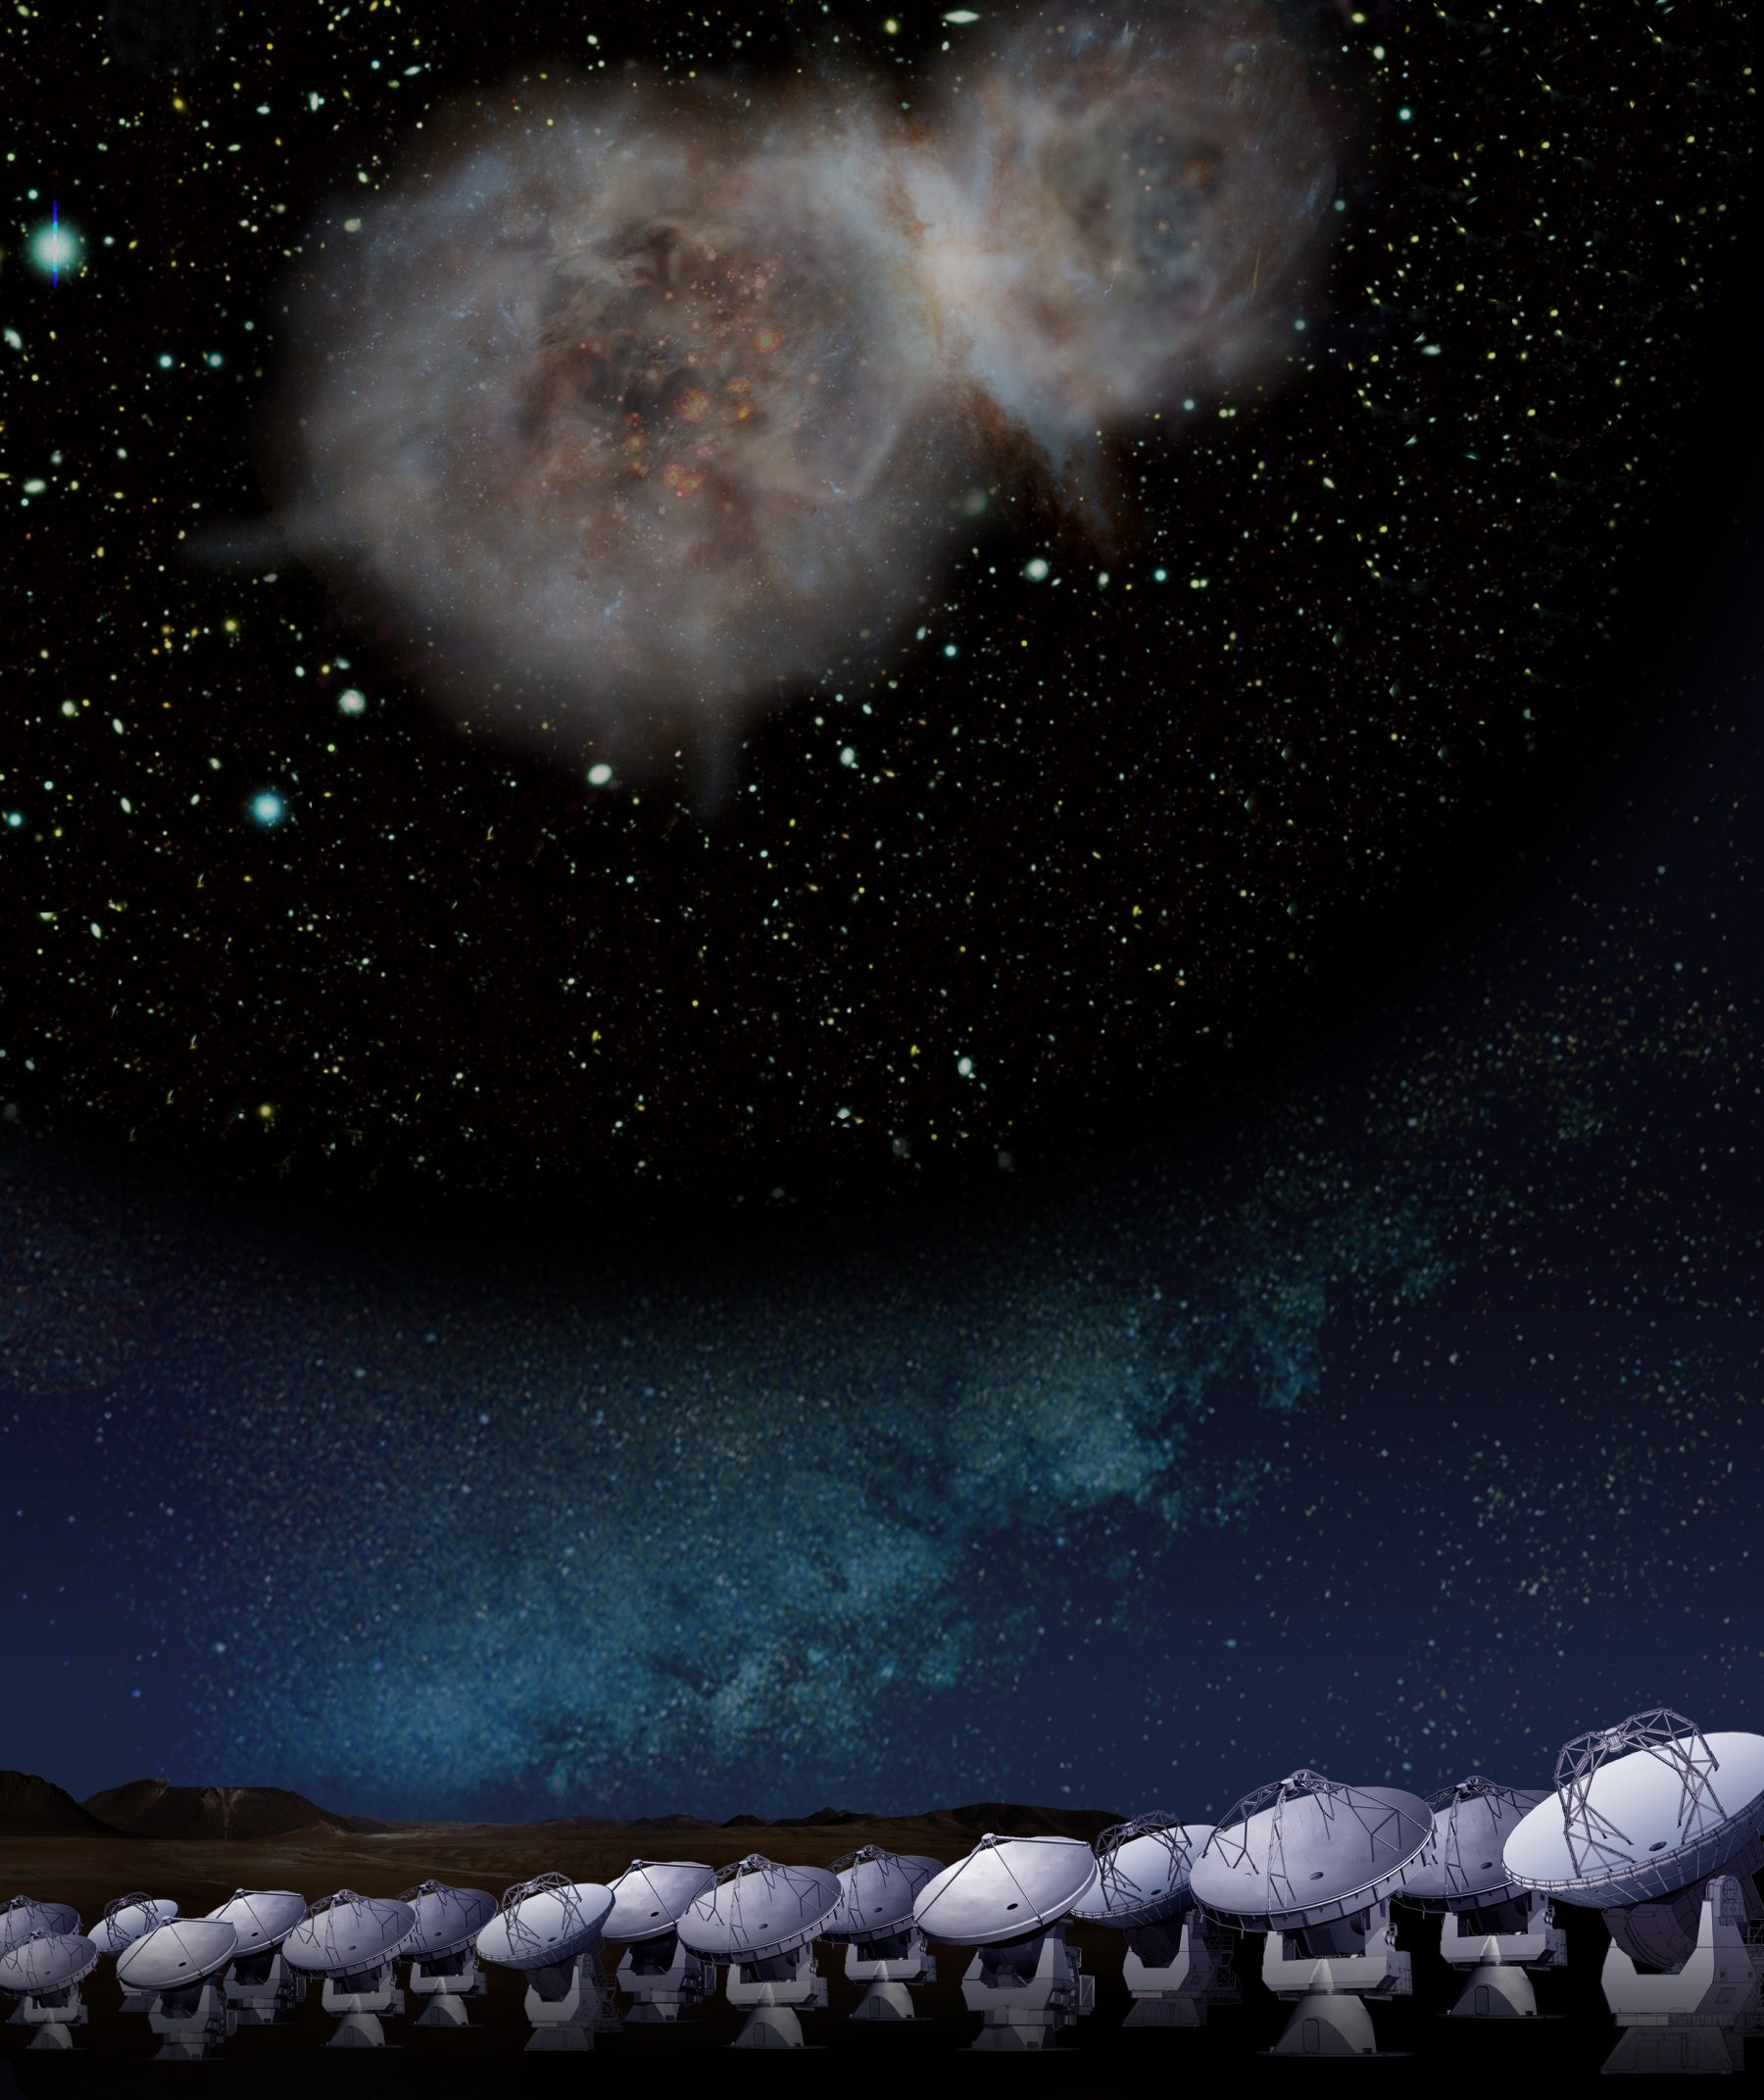 Artist impression of the submillimeter galaxy LESS J0332 observed the ALMA at the 5000-meter altitude plateau.